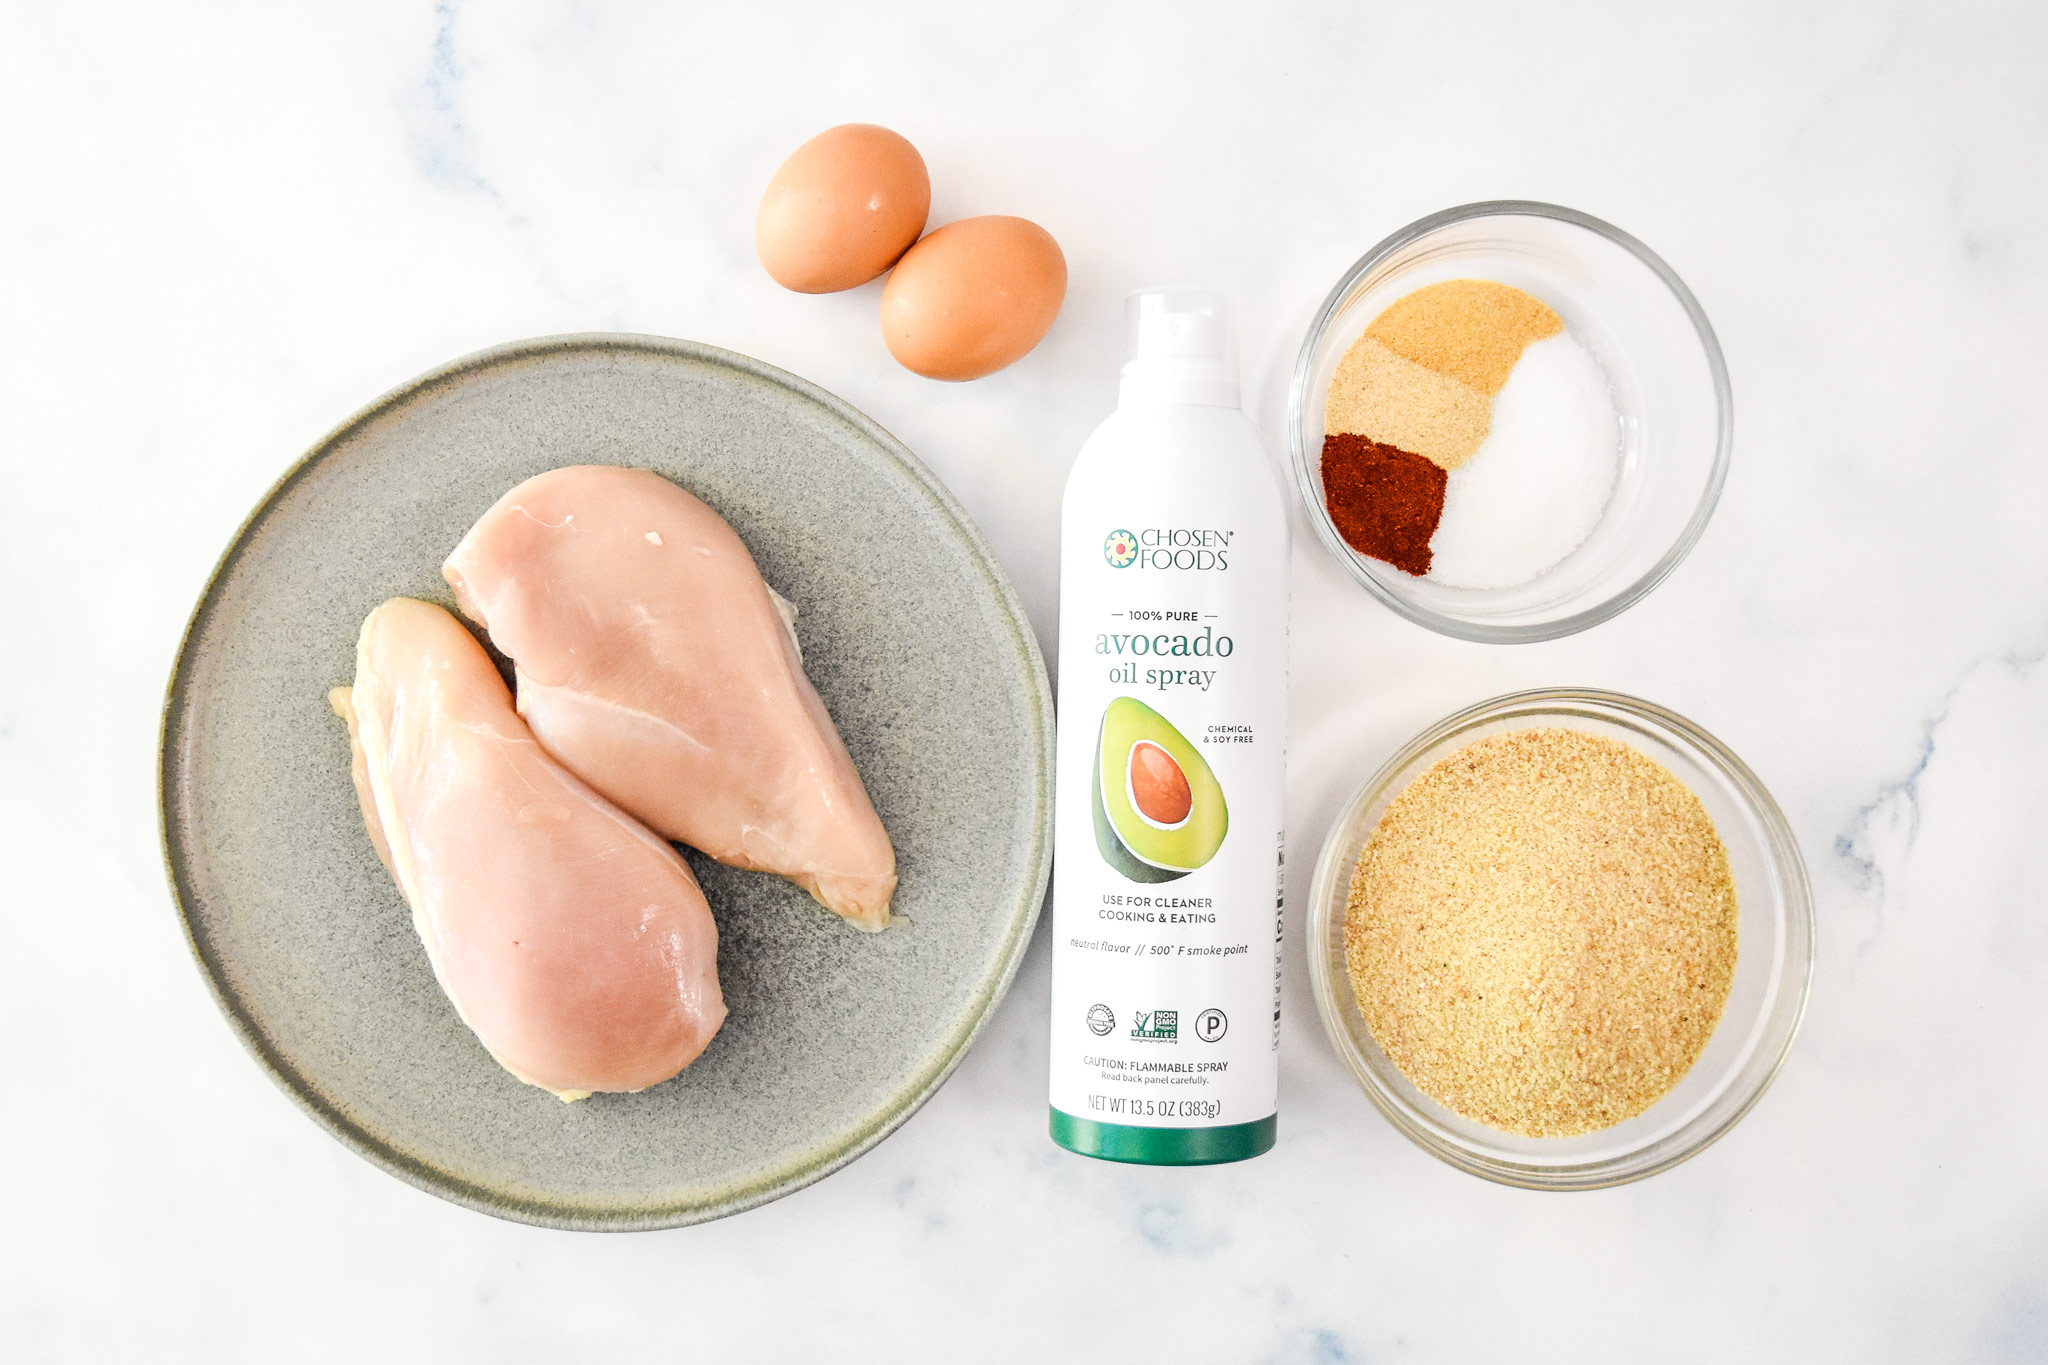 ingredients for the air fryer breaded chicken tenders including raw chicken.